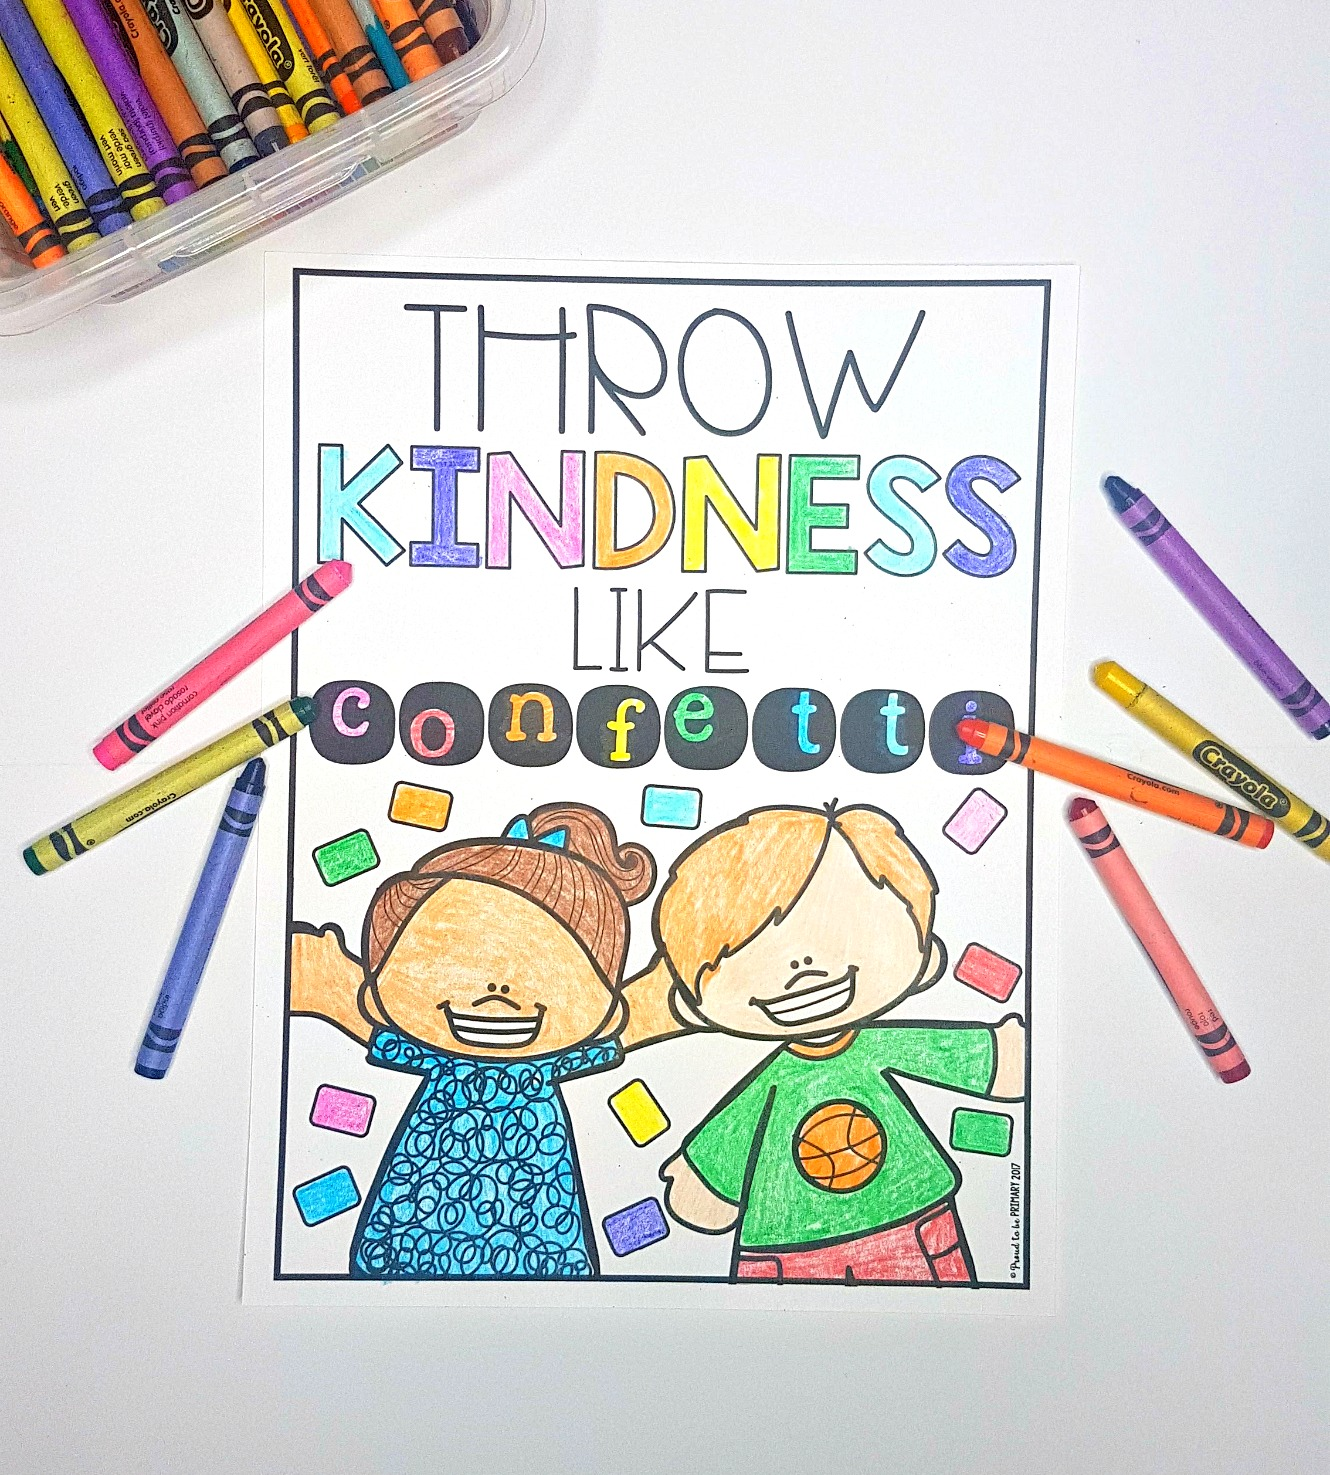 kindness books and videos for the classroom - throw kindness like confetti quote coloring poster for kids on table with crayons